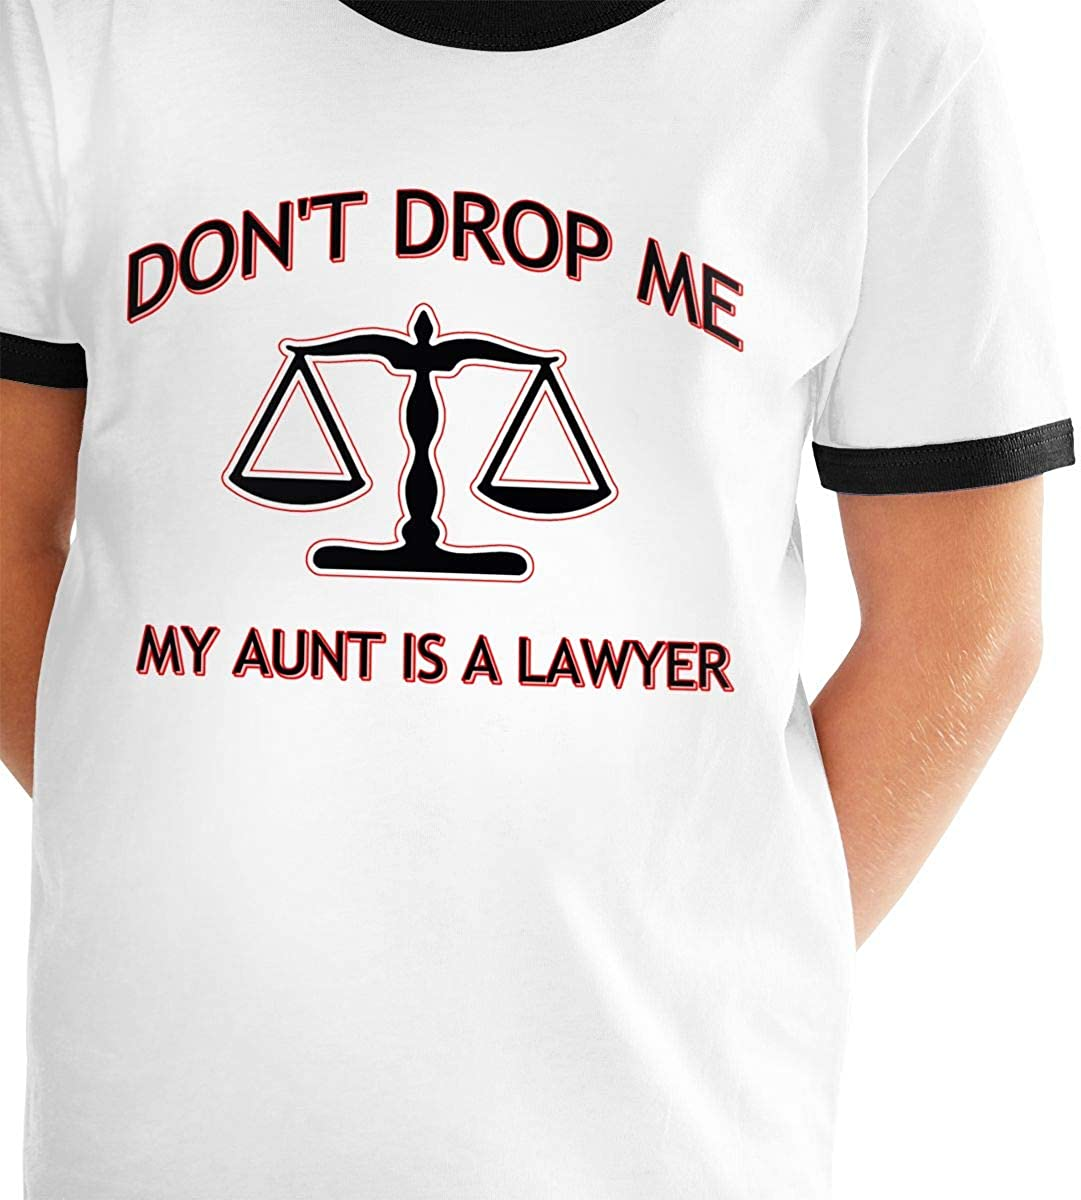 Dont Drop Me My Aunt is A Lawyer Unisex Childrens Short Sleeve T-Shirt Kids Or Little Boys and Girls